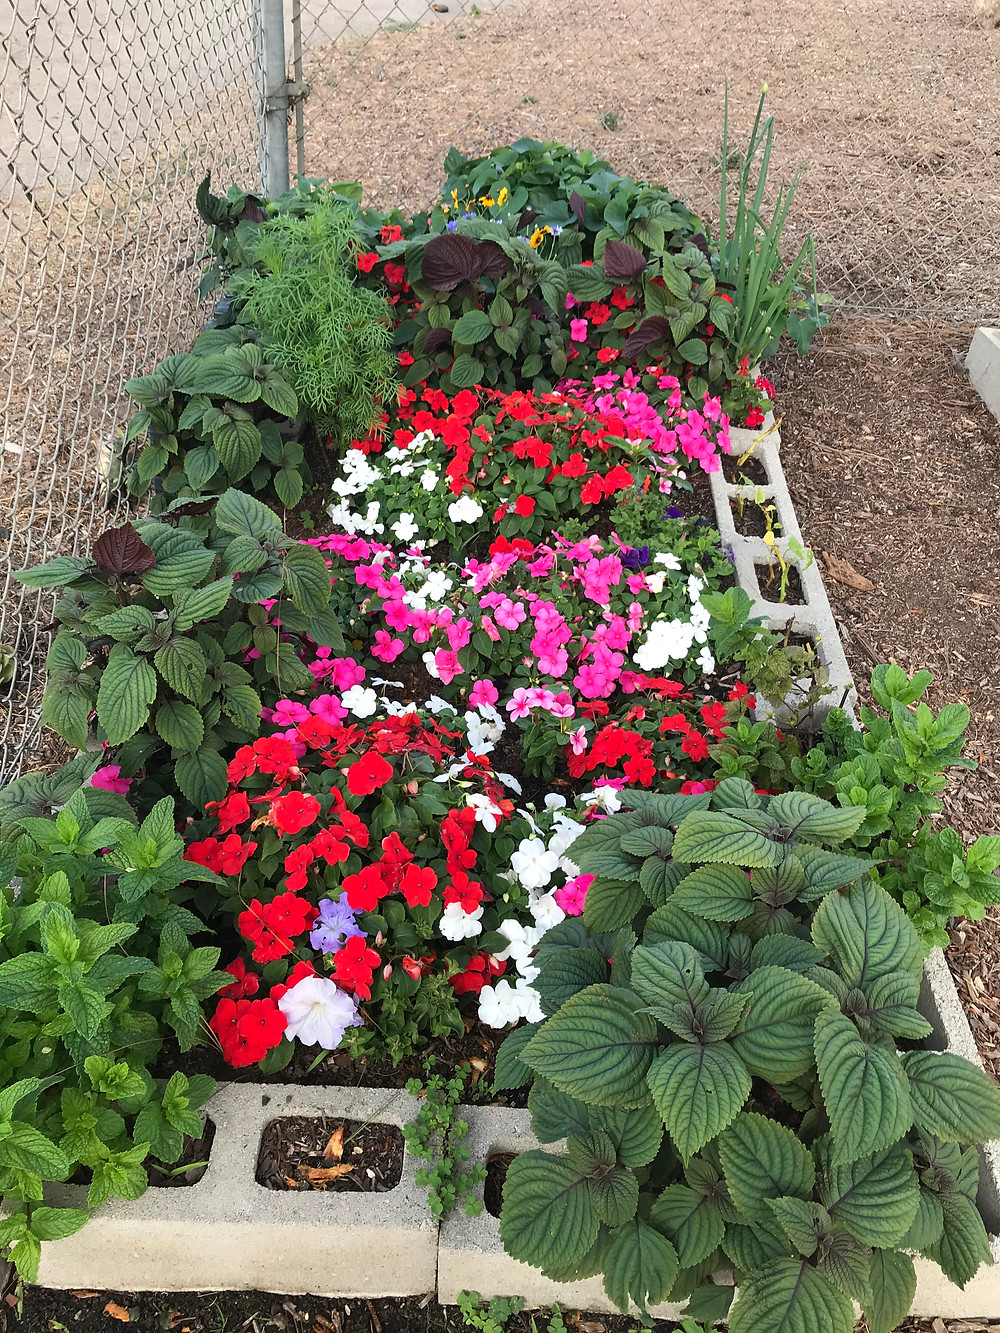 vibrant pink, red, and white flowers in a community garden plot